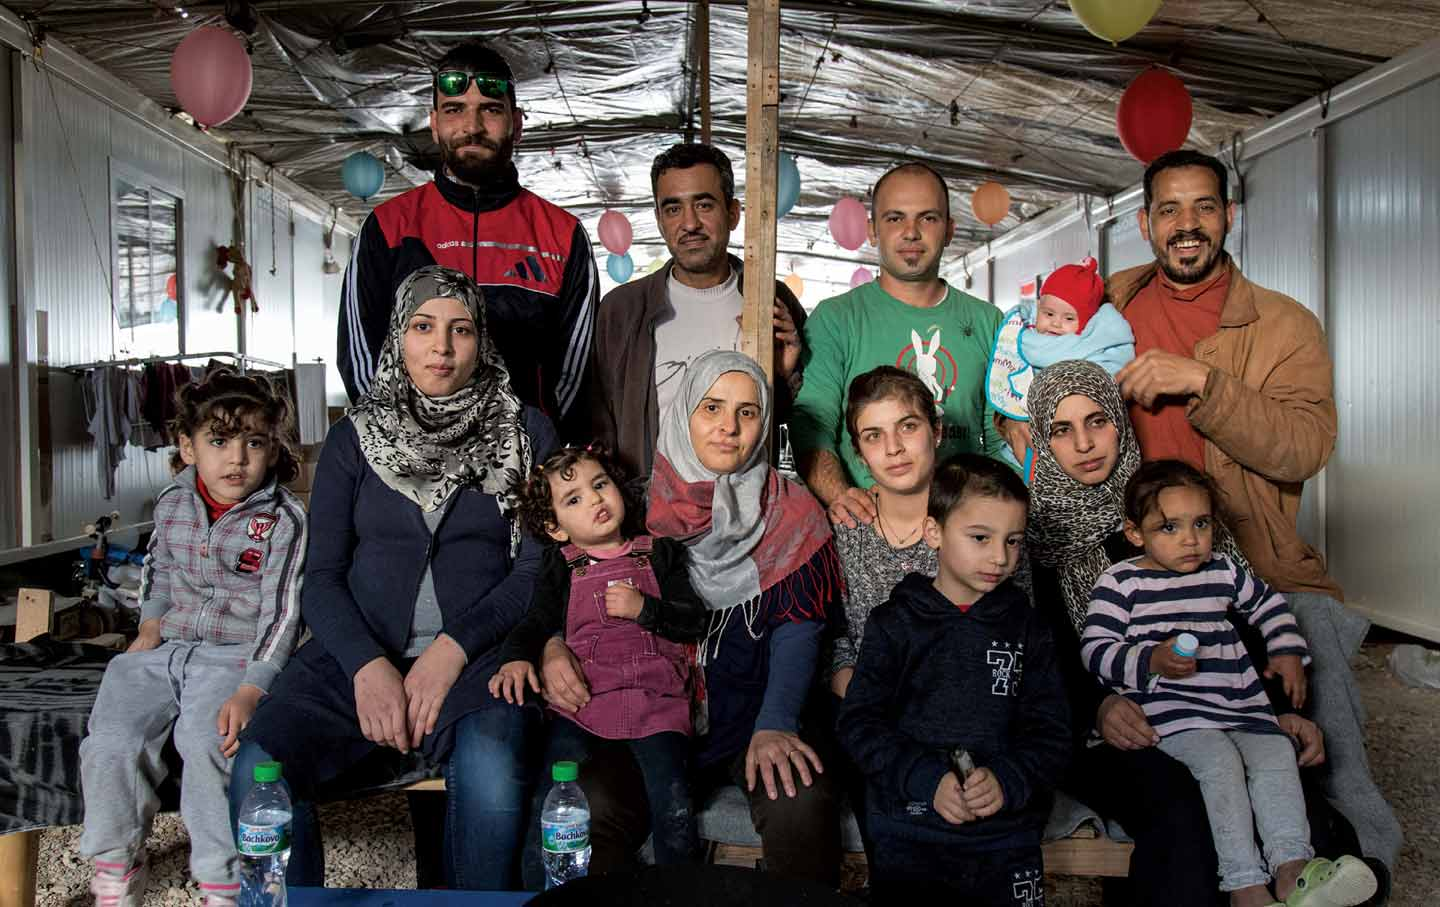 How Food Brought an Unlikely Group of Syrian Refugees Together